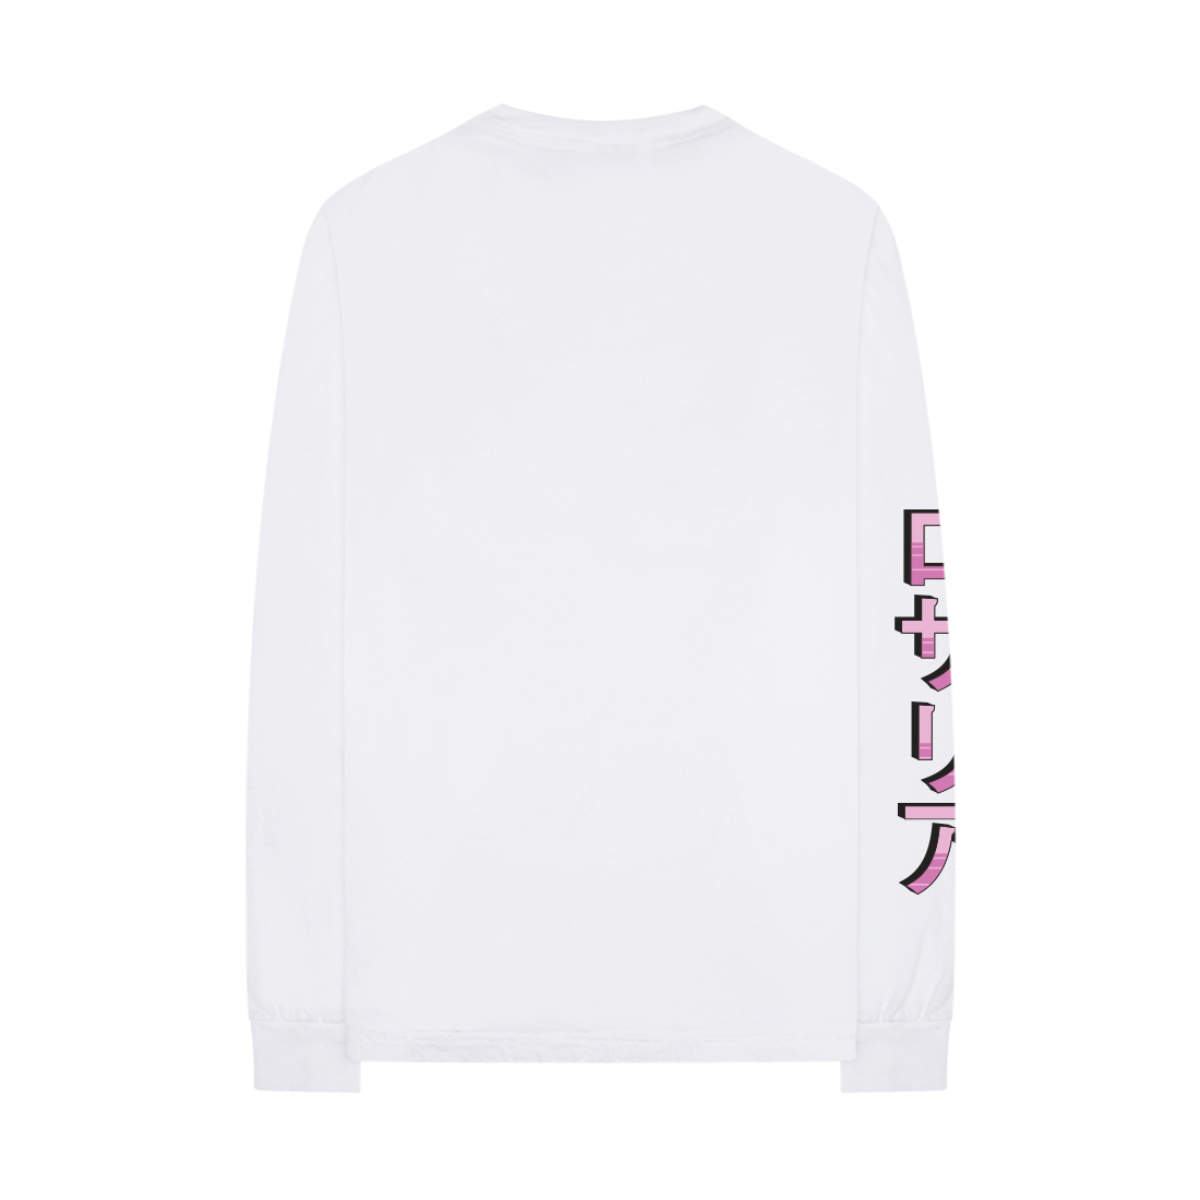 Character White Long Sleeve Tee